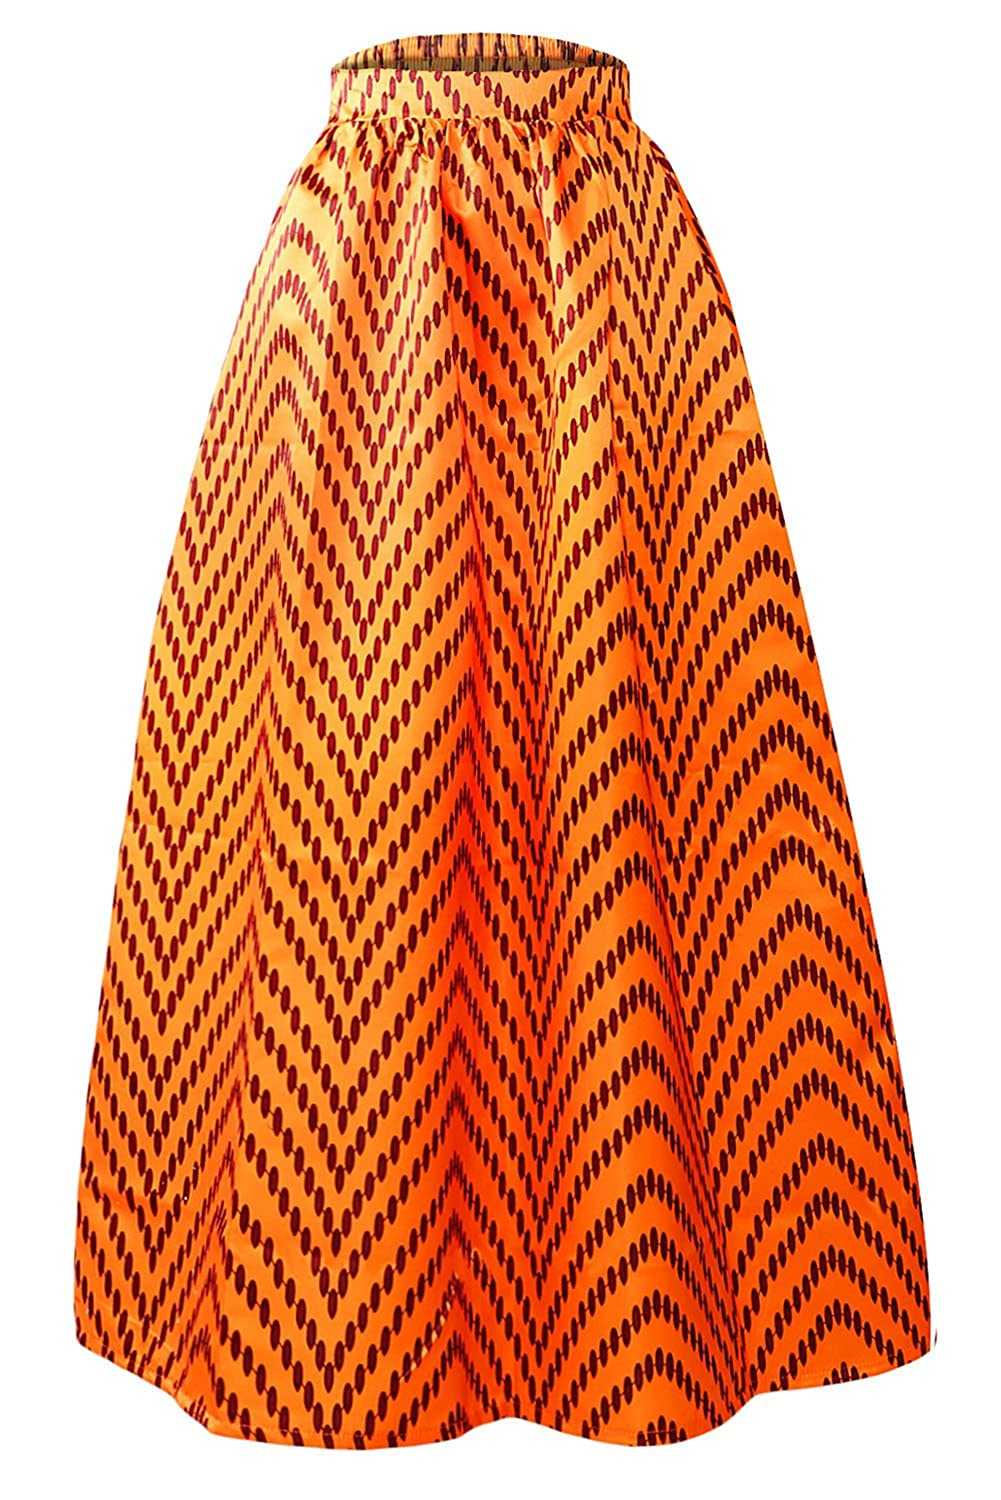 Red Dot Boutique 8824 - Plus Size Ethnic African Print Long Maxi Skirt